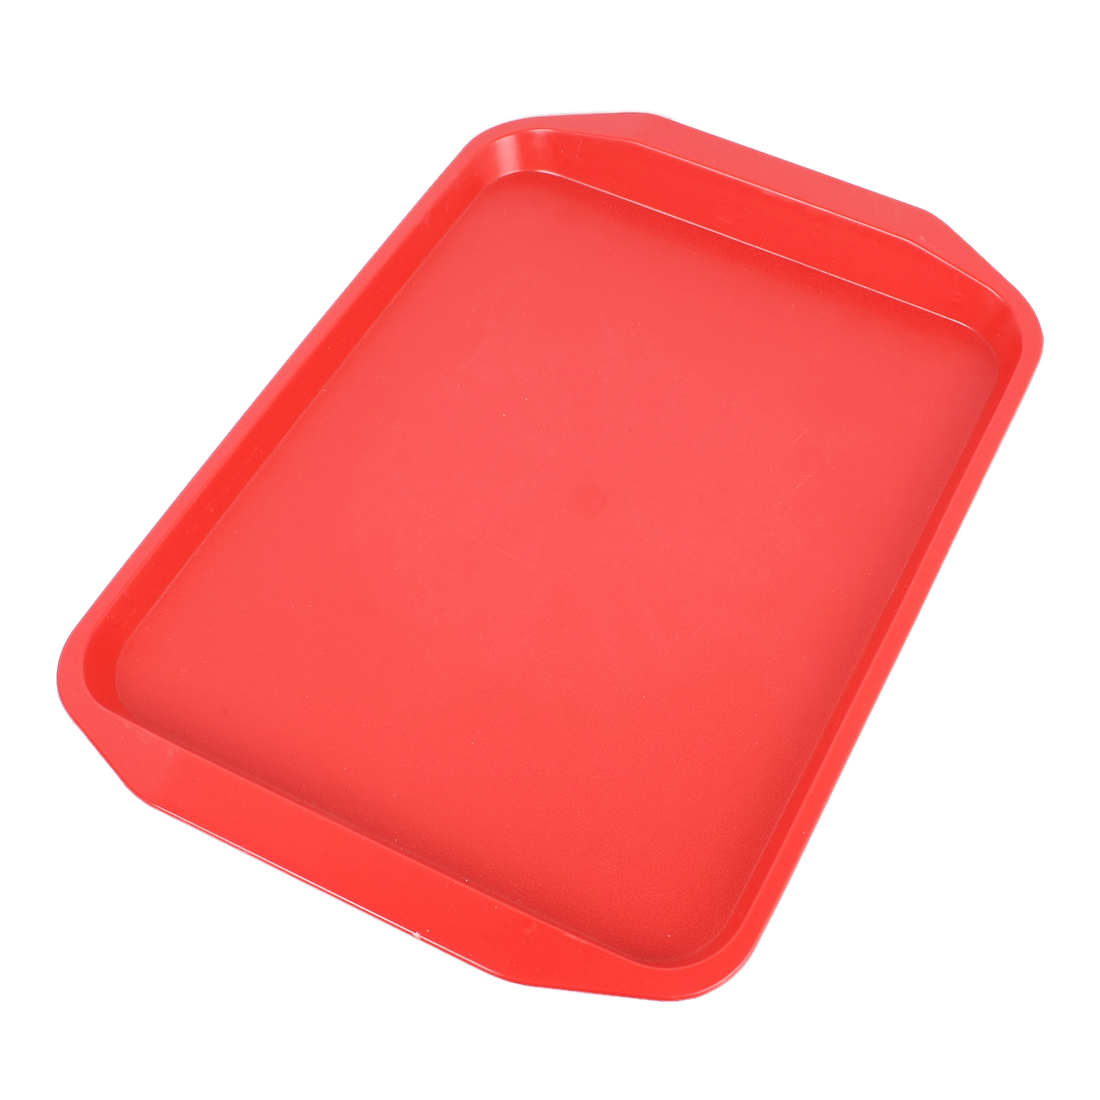 uxcell plastic rectangle designed dinner food court serving tray red serving traychina - Plastic Serving Trays